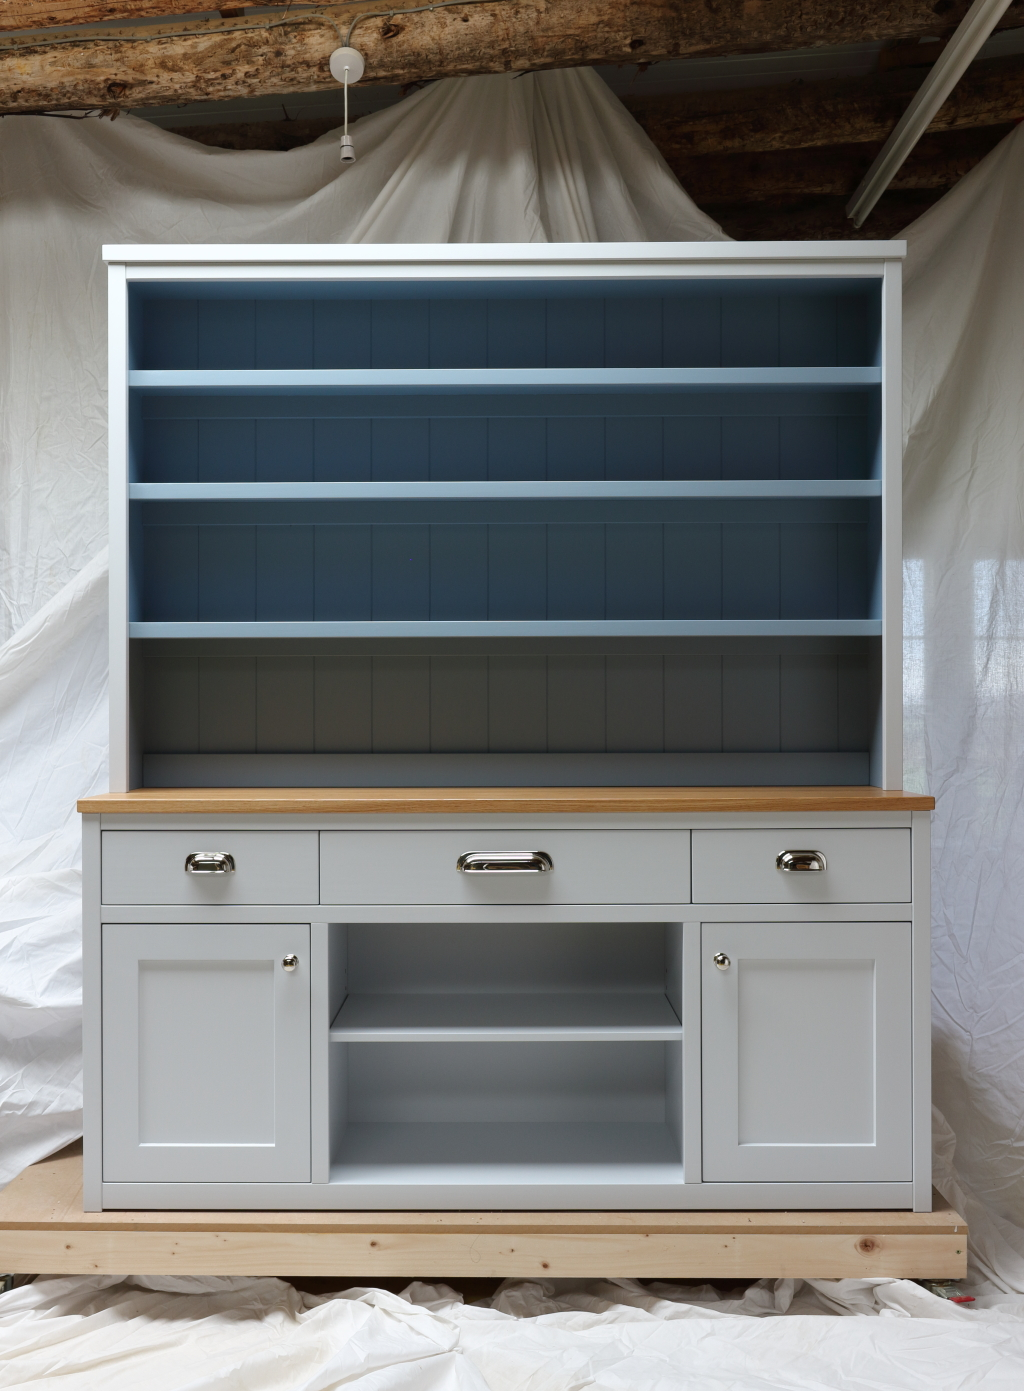 This large dresser was custom-designed and handmade in East Lothian, Scotland by The Edinburgh Dresser Furniture Company (part of Organic Geometry Furniture).